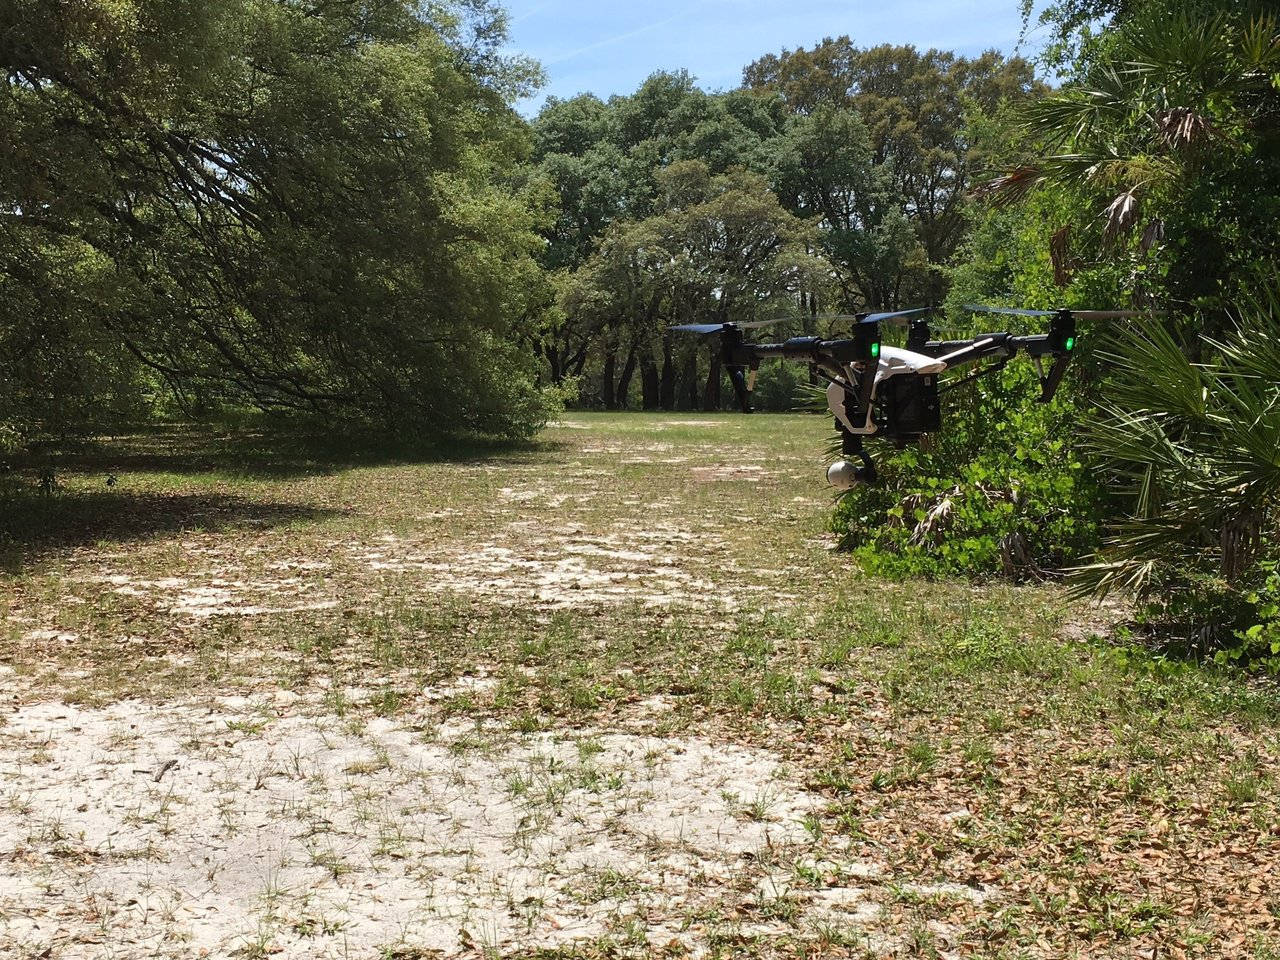 Teaching Drones How to Navigate in Complex Environments